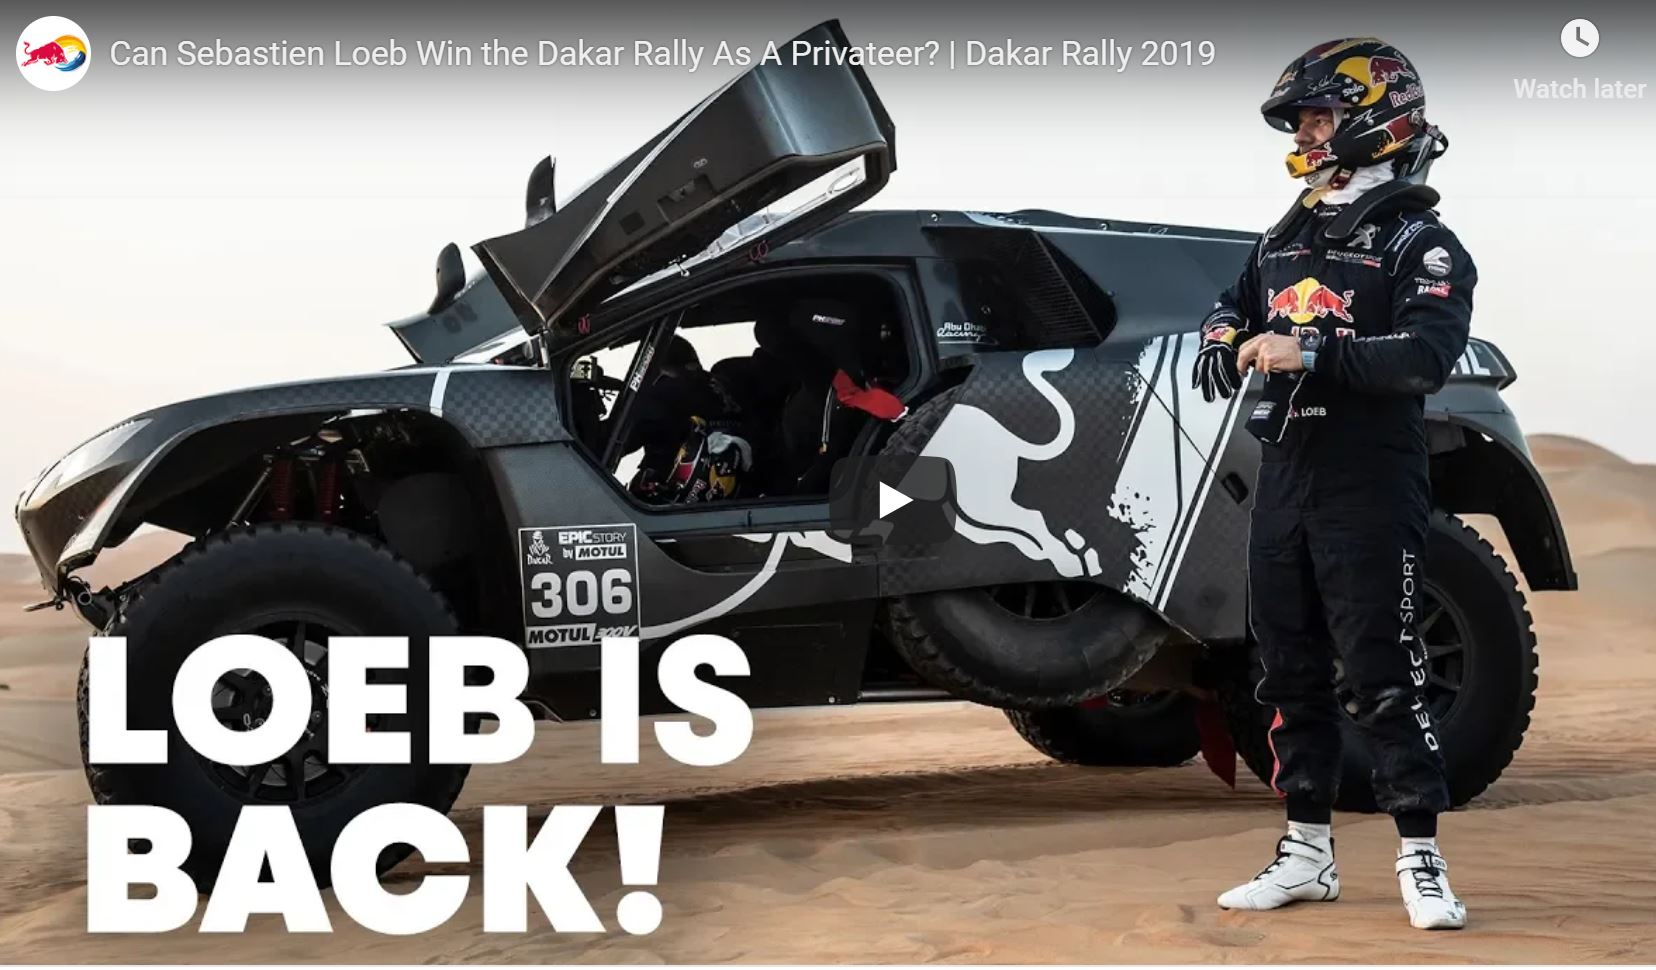 We Weren't The Only Ones Wondering If Sebastien Loeb Can Win the Dakar Rally As A Privateer In 2019